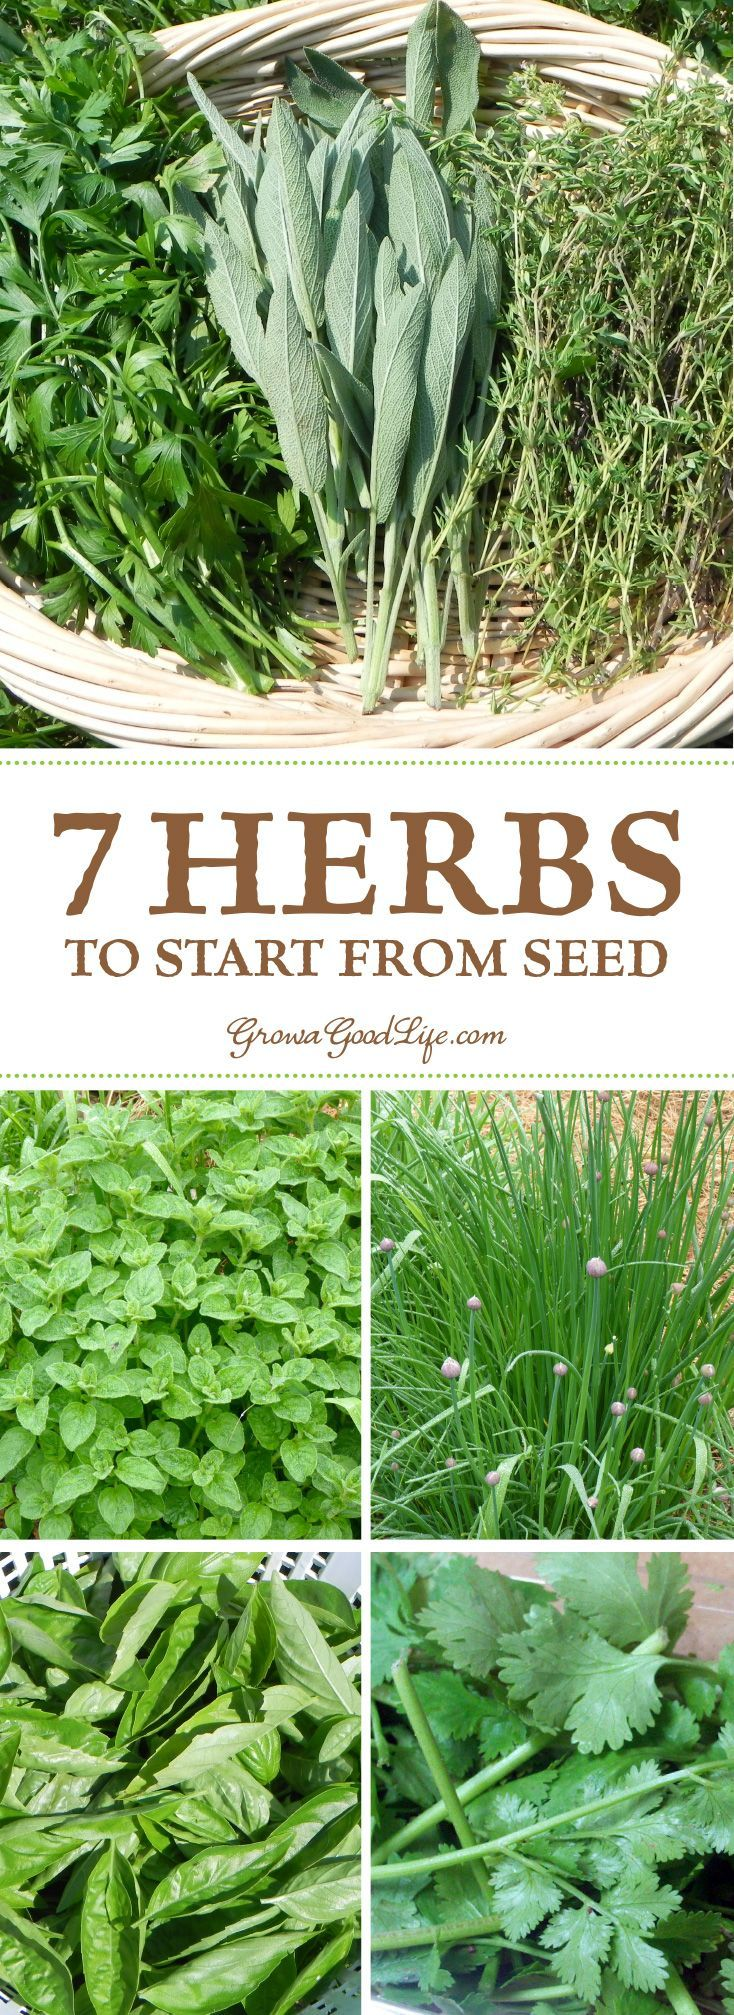 Fresh Herbs Add Delightful Flavor And Fragrance To Foods 400 x 300